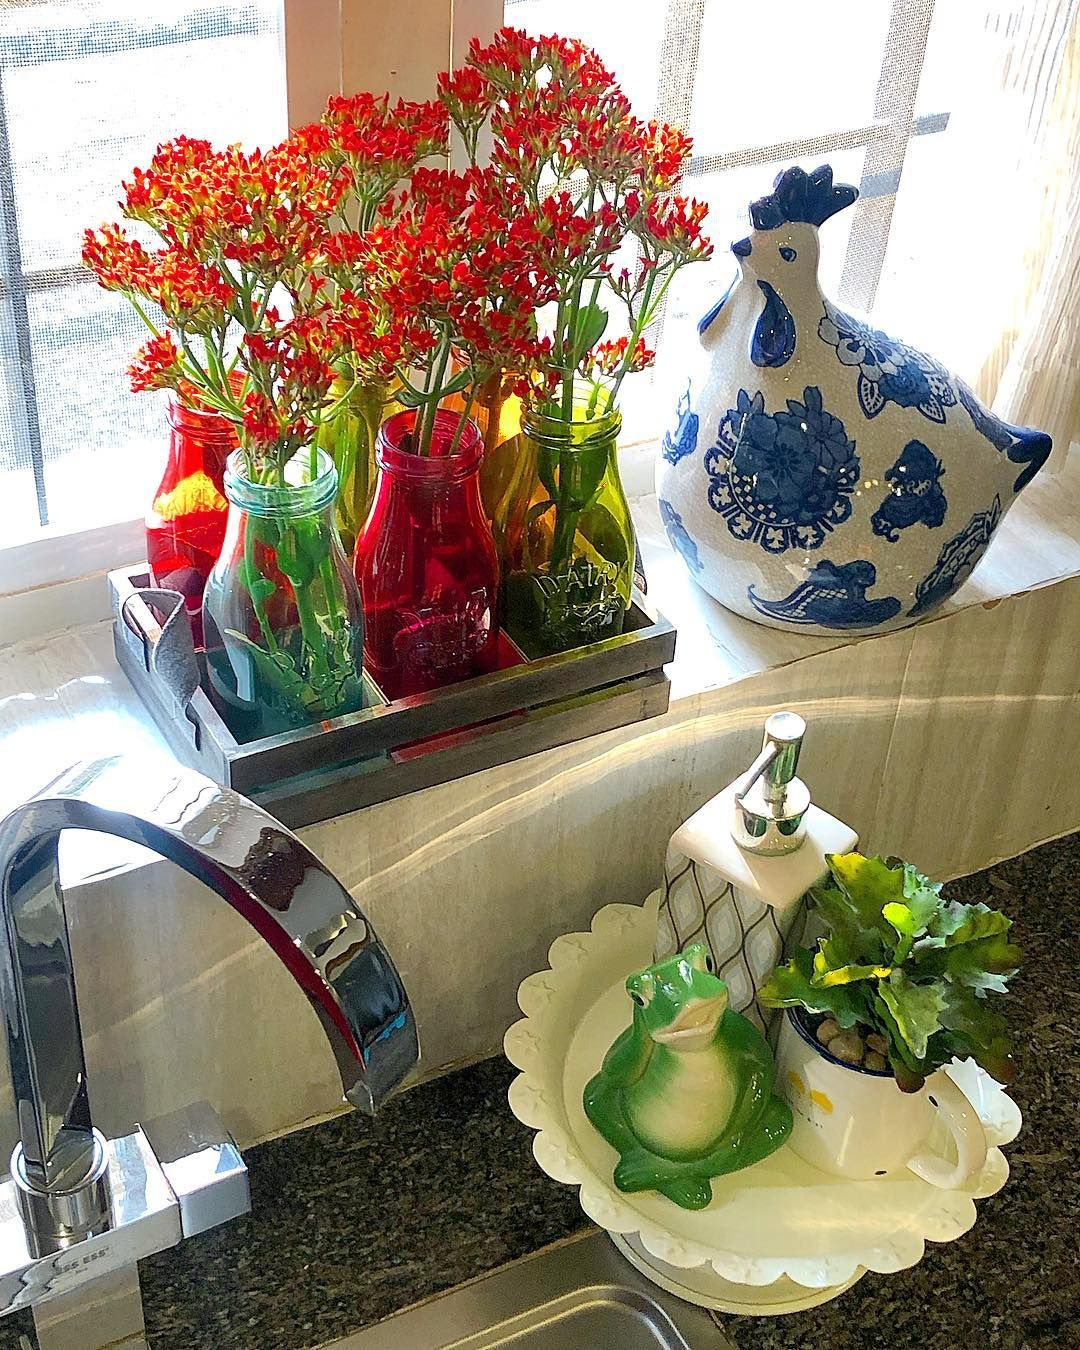 Traditional Indian Kitchen Design: Fresh Blooms From The Garden Perks Up The Kitchen Counter